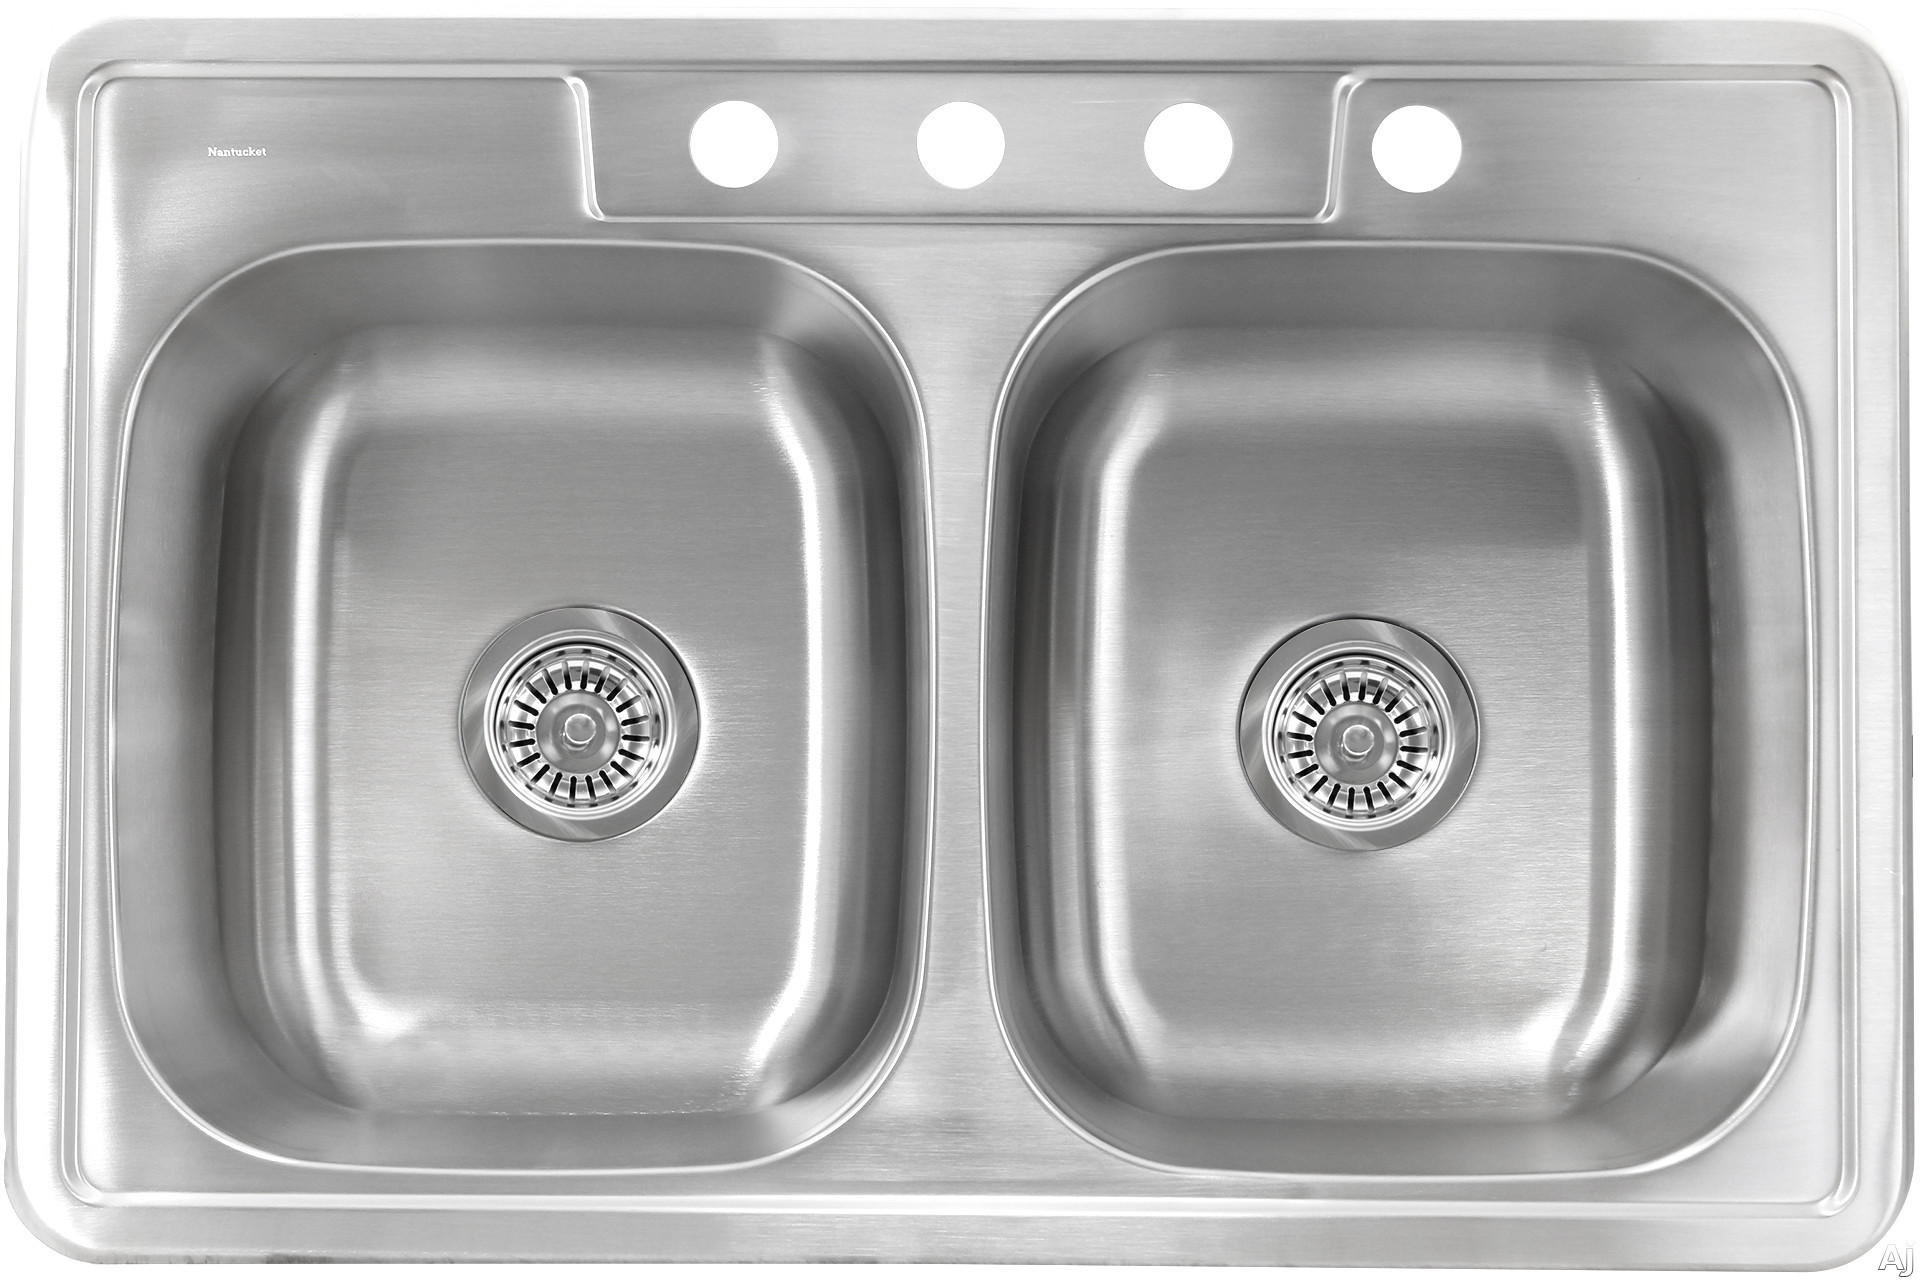 Nantucket Sinks Madaket Collection NS332220DE 33 Inch Double Bowl Drop-In Kitchen Sink with 8 Inch Bowl Depth, 304 Stainless Steel, 20 Gauge, Brushed Satin Finish and Condensation Reducing Insulation